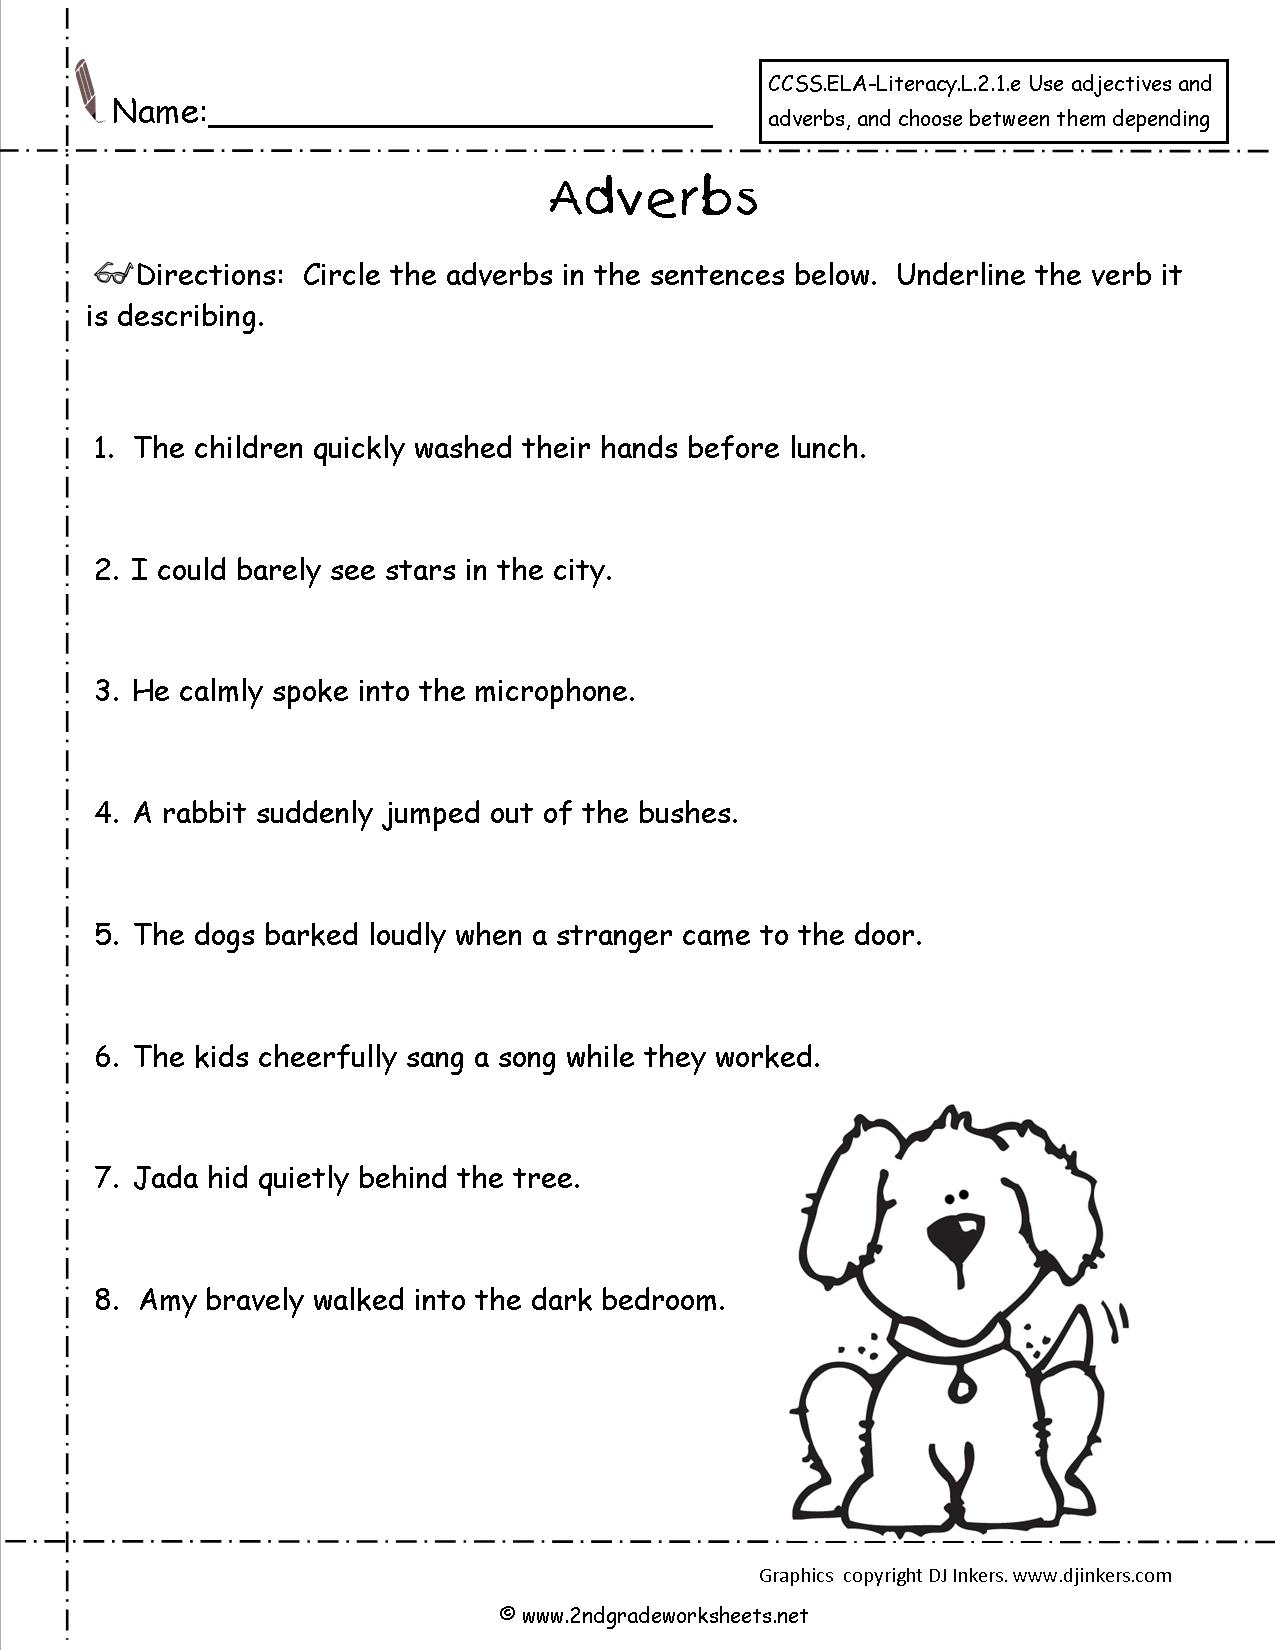 13 Best Images Of Grammar Adverb Worksheets